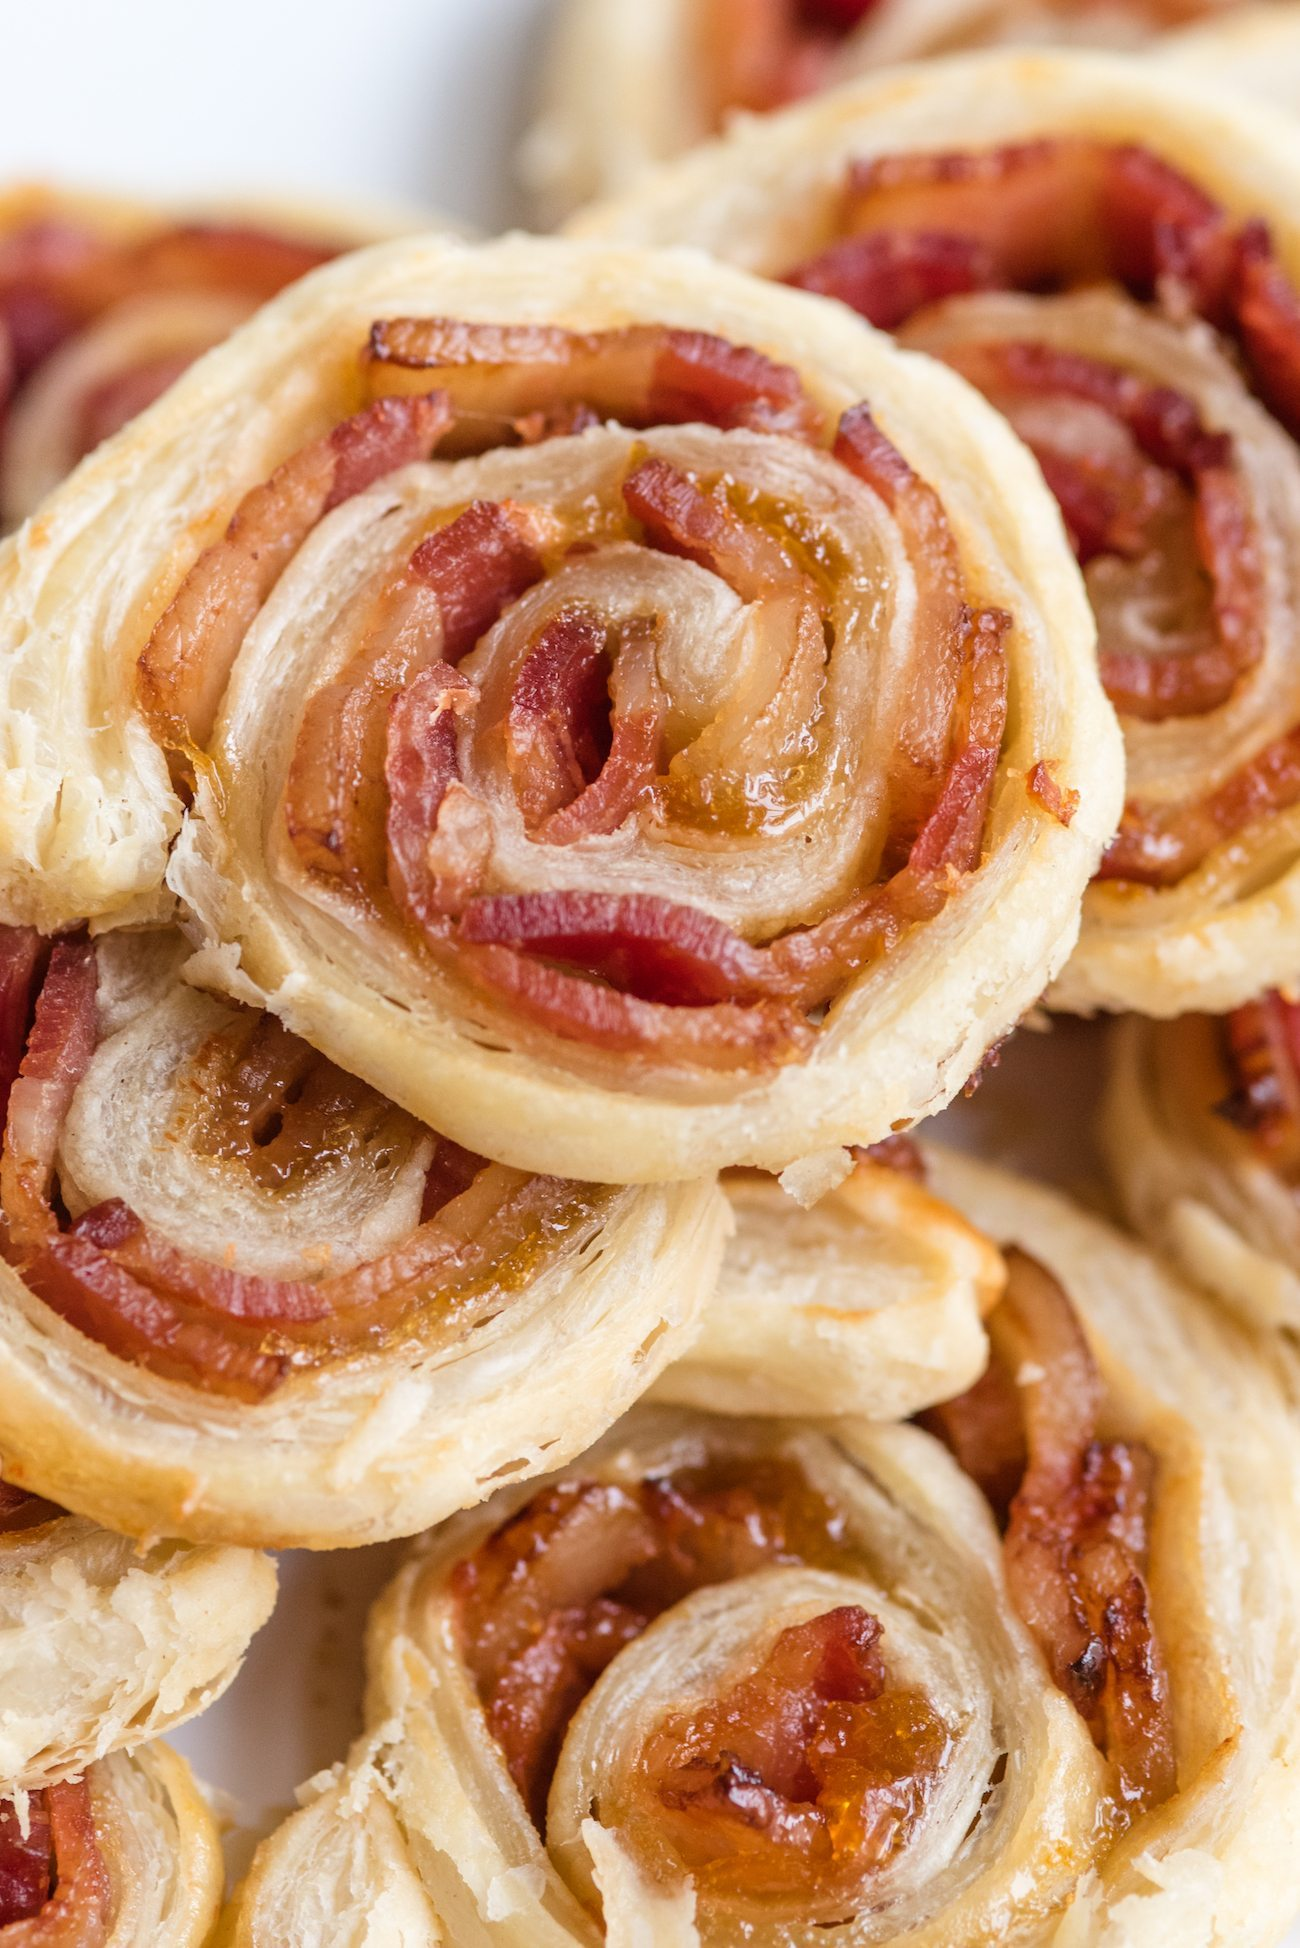 Last Minute Entertaining Tips | Bacon and jam pinwheel appetizers from @cydconverse